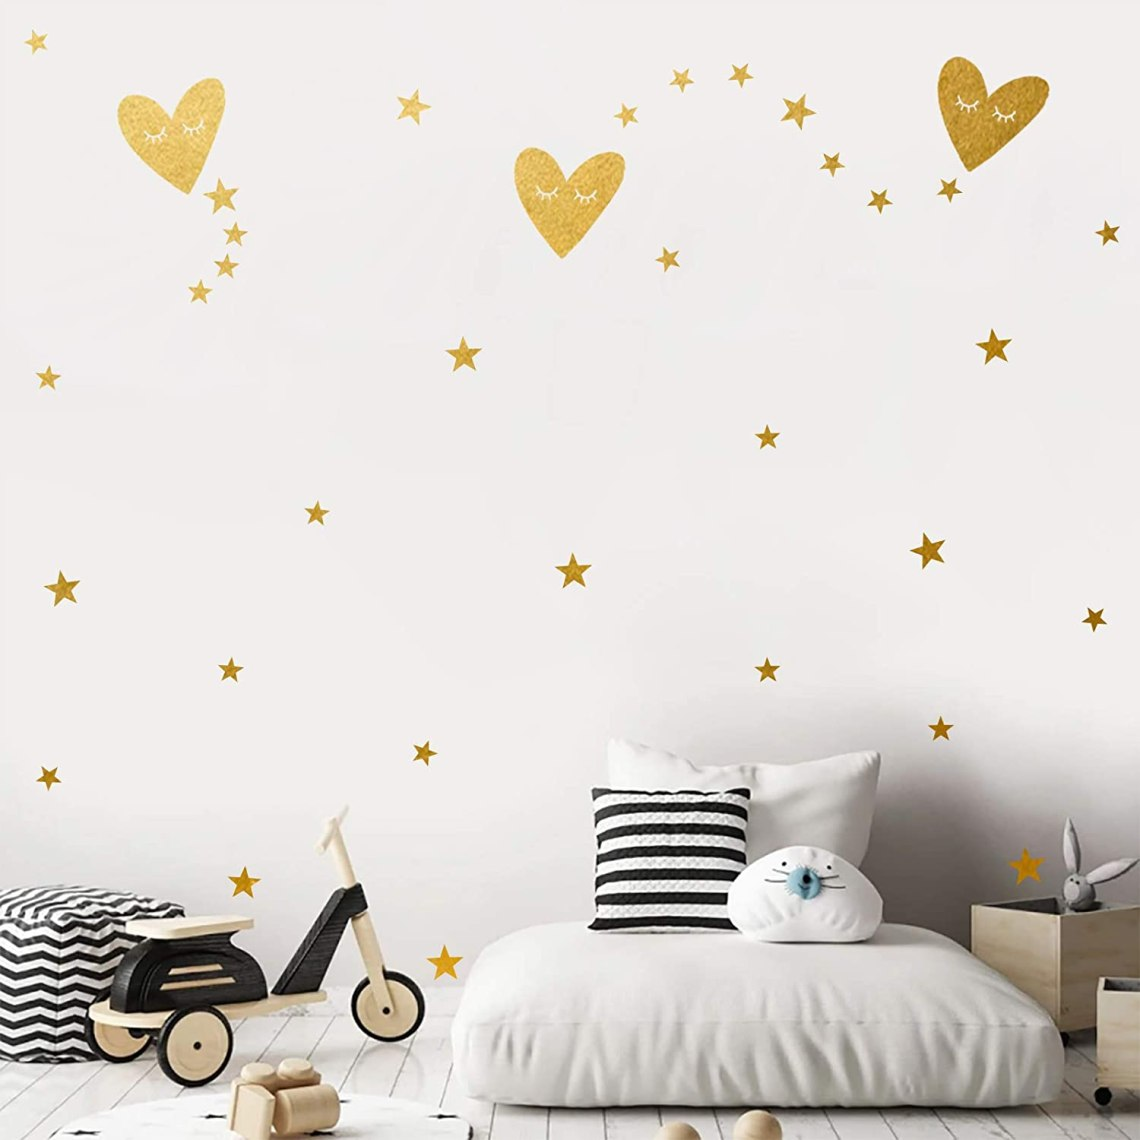 Buy Heart Shaped Star Wall Decals Easy Paste Vinyl Kids Room Decor For Girls Boys Good Night Nursery Wall Decor Wall Stickers For Living Room Gold Wall Decor 3 Heart Online In Indonesia B08l65h9ts